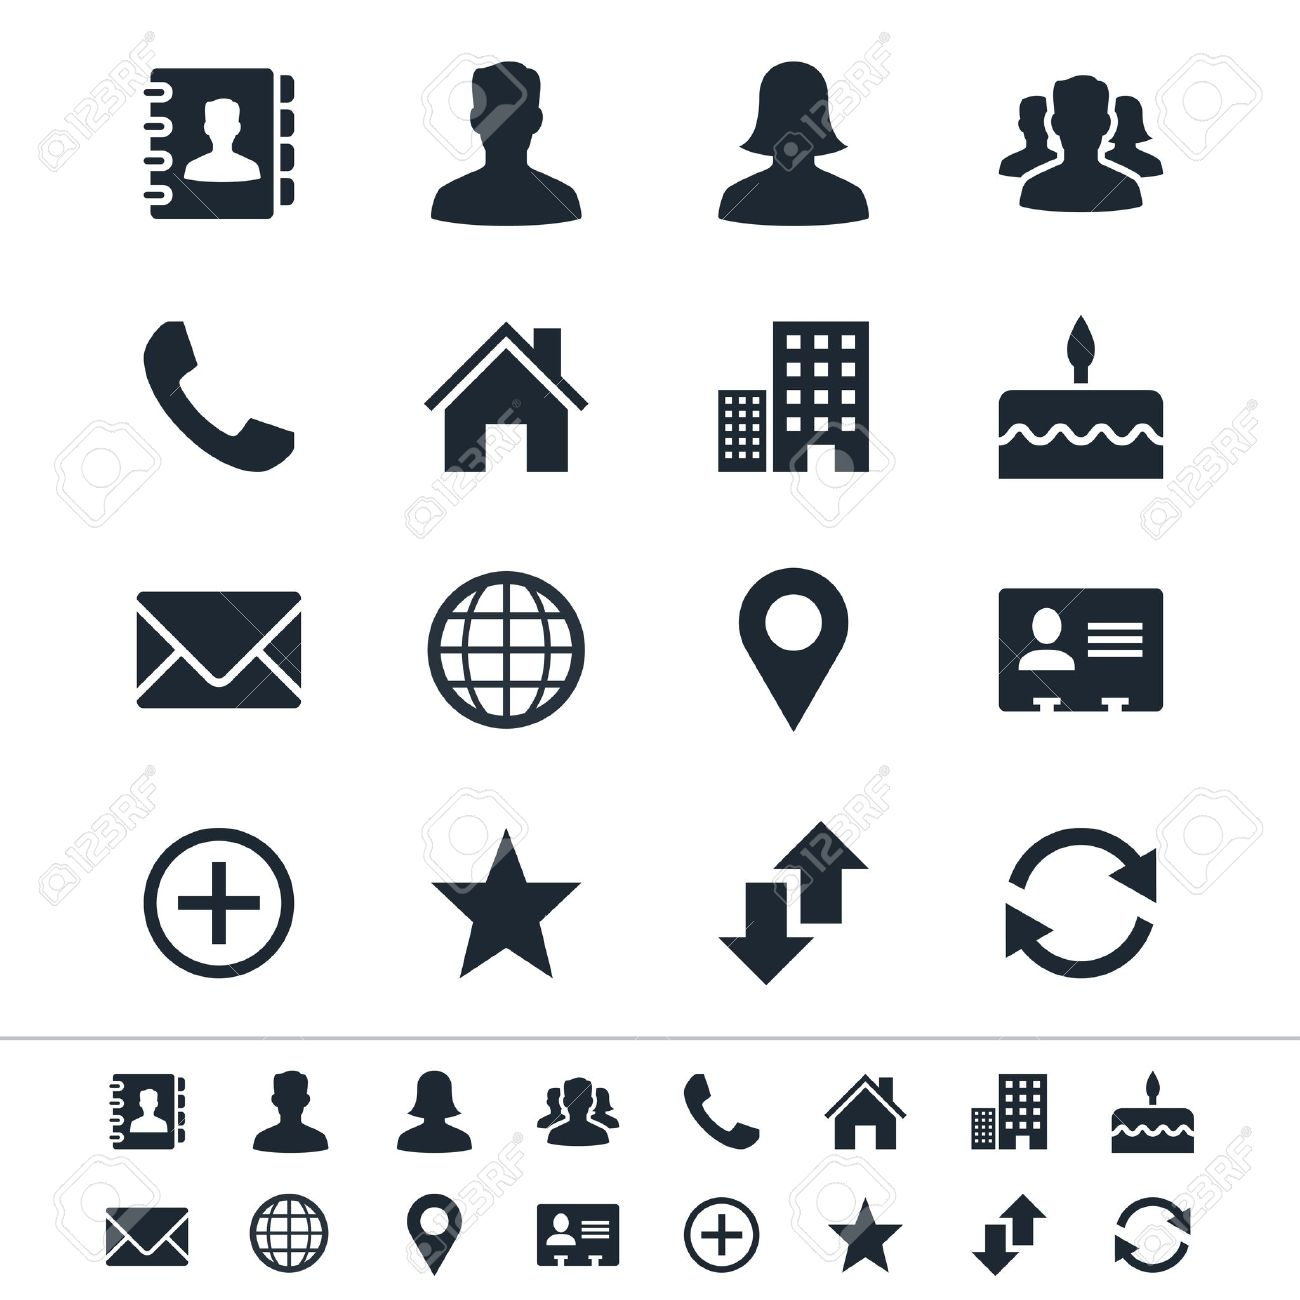 Contact icons Stock Vector - 17978862